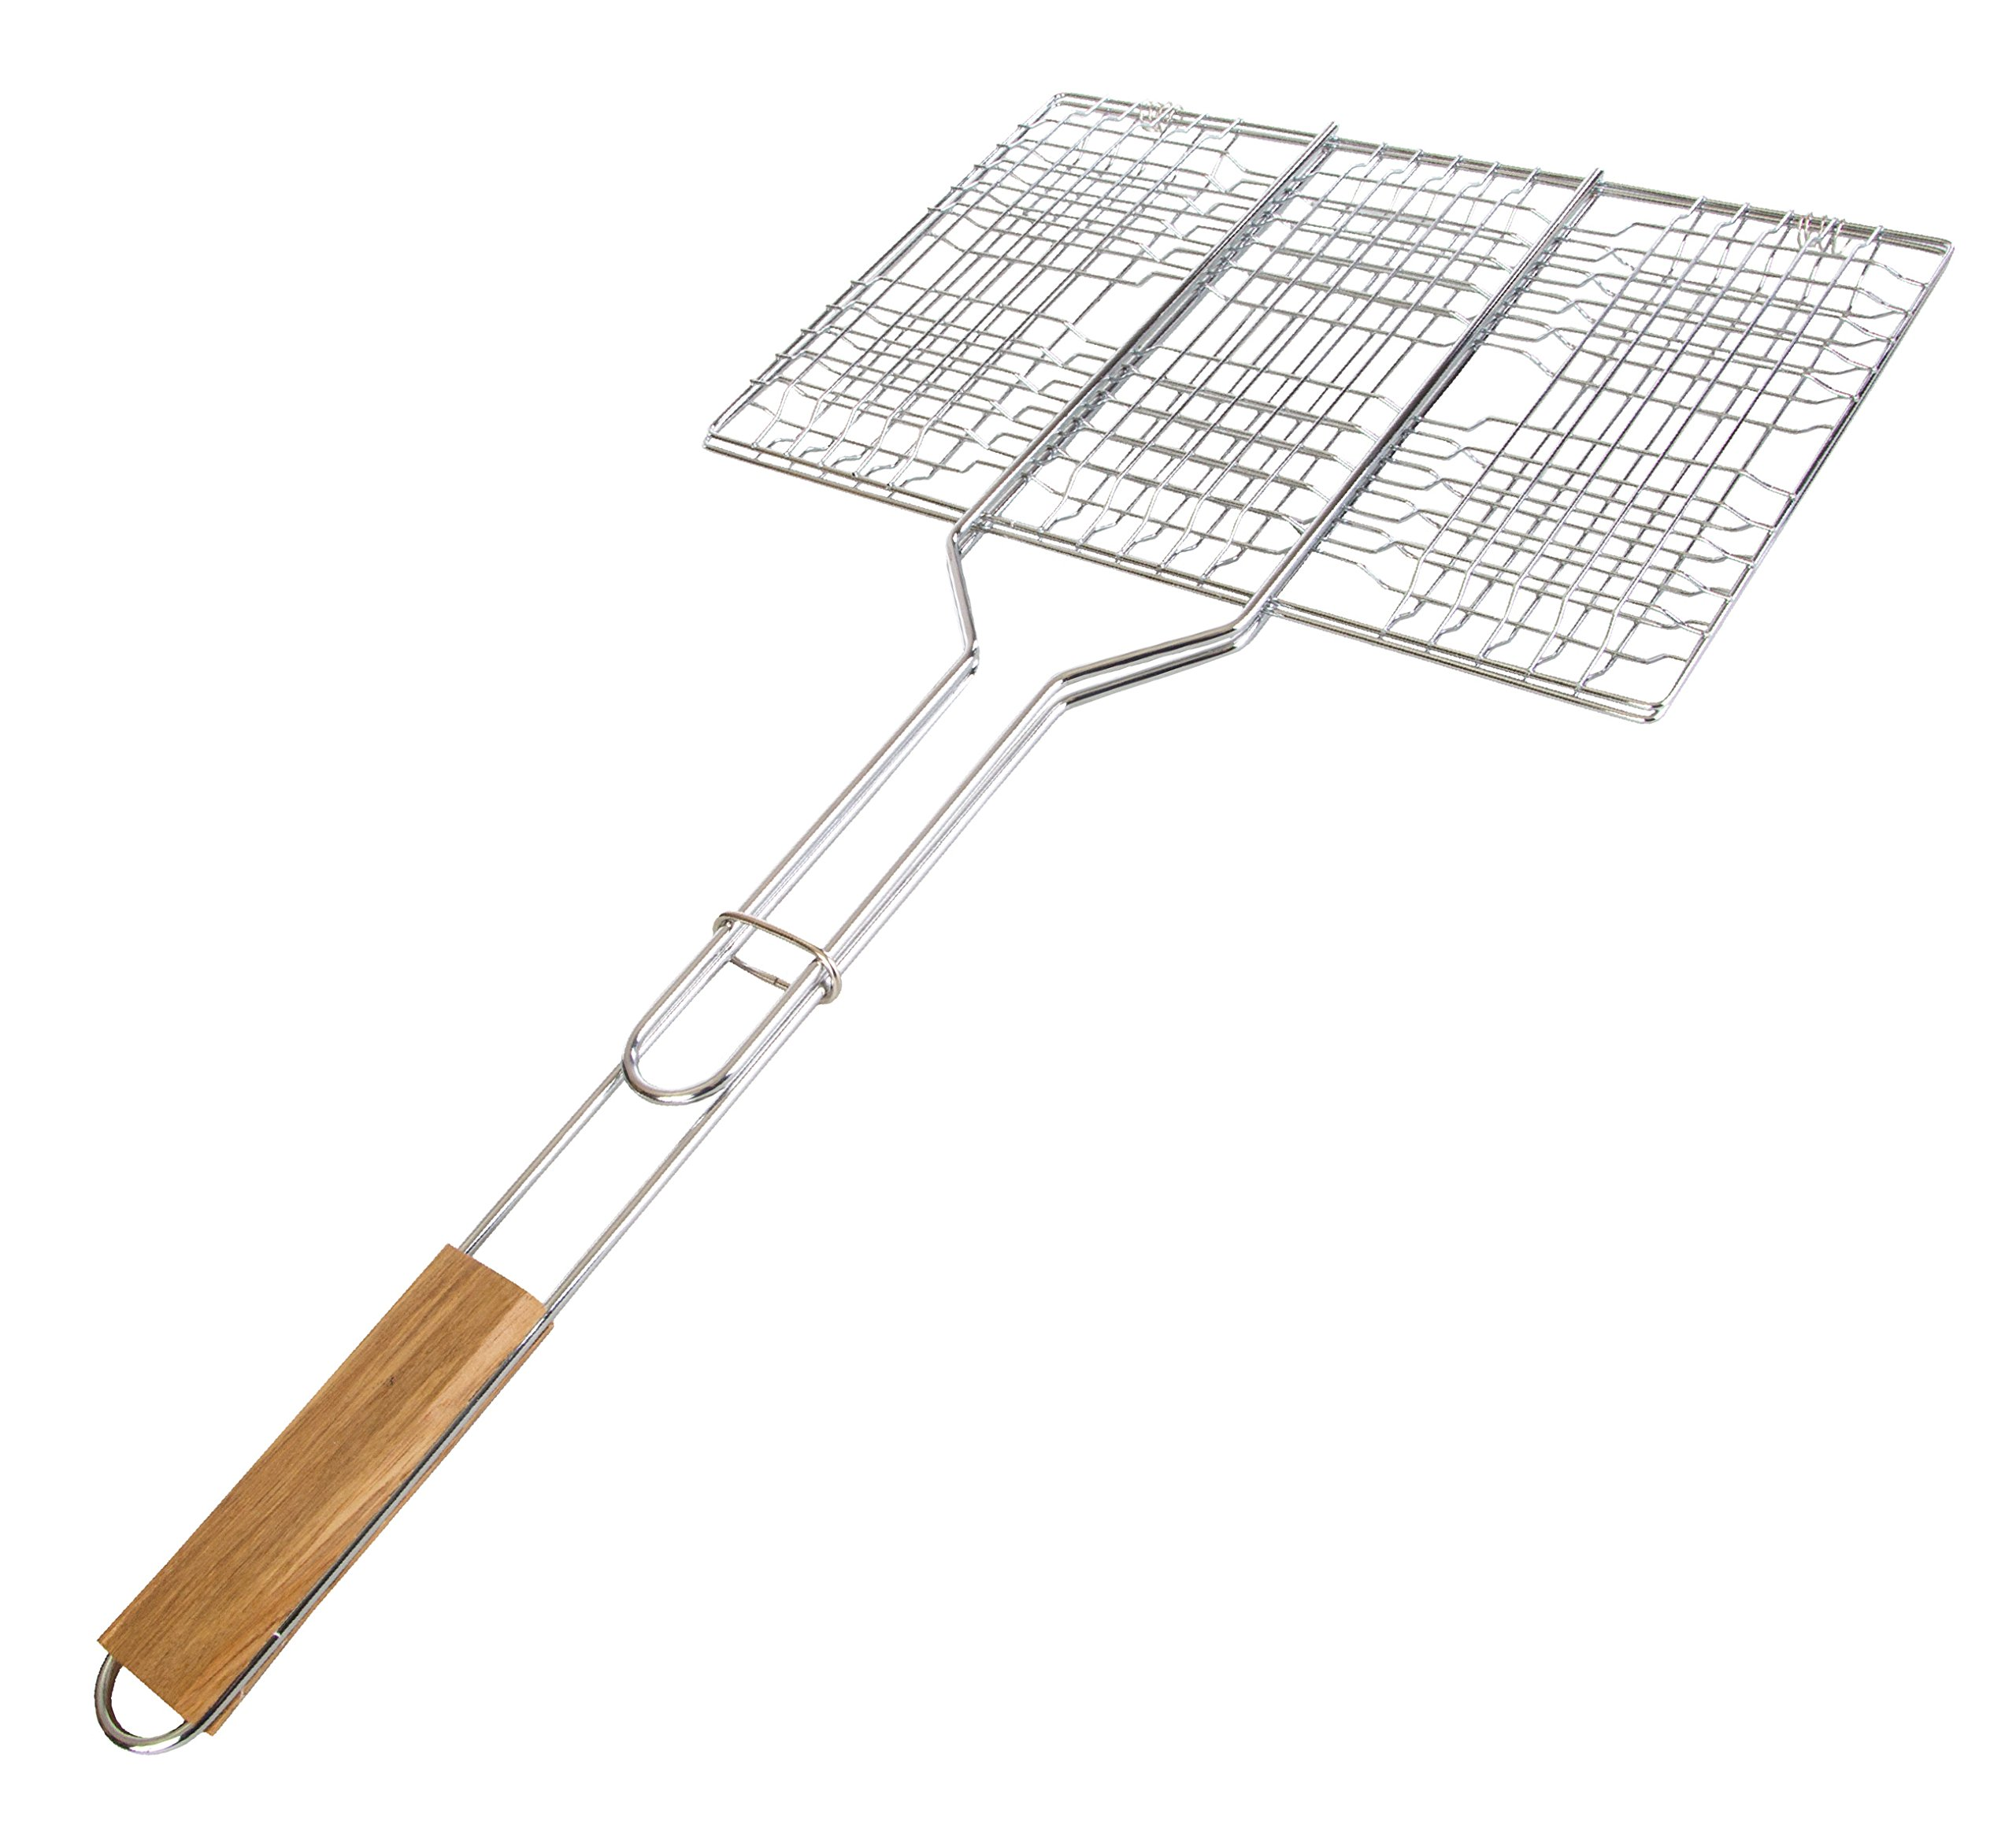 Stansport Deluxe Camp Cooking Broiler Basket (13.5x9x1-Inch)